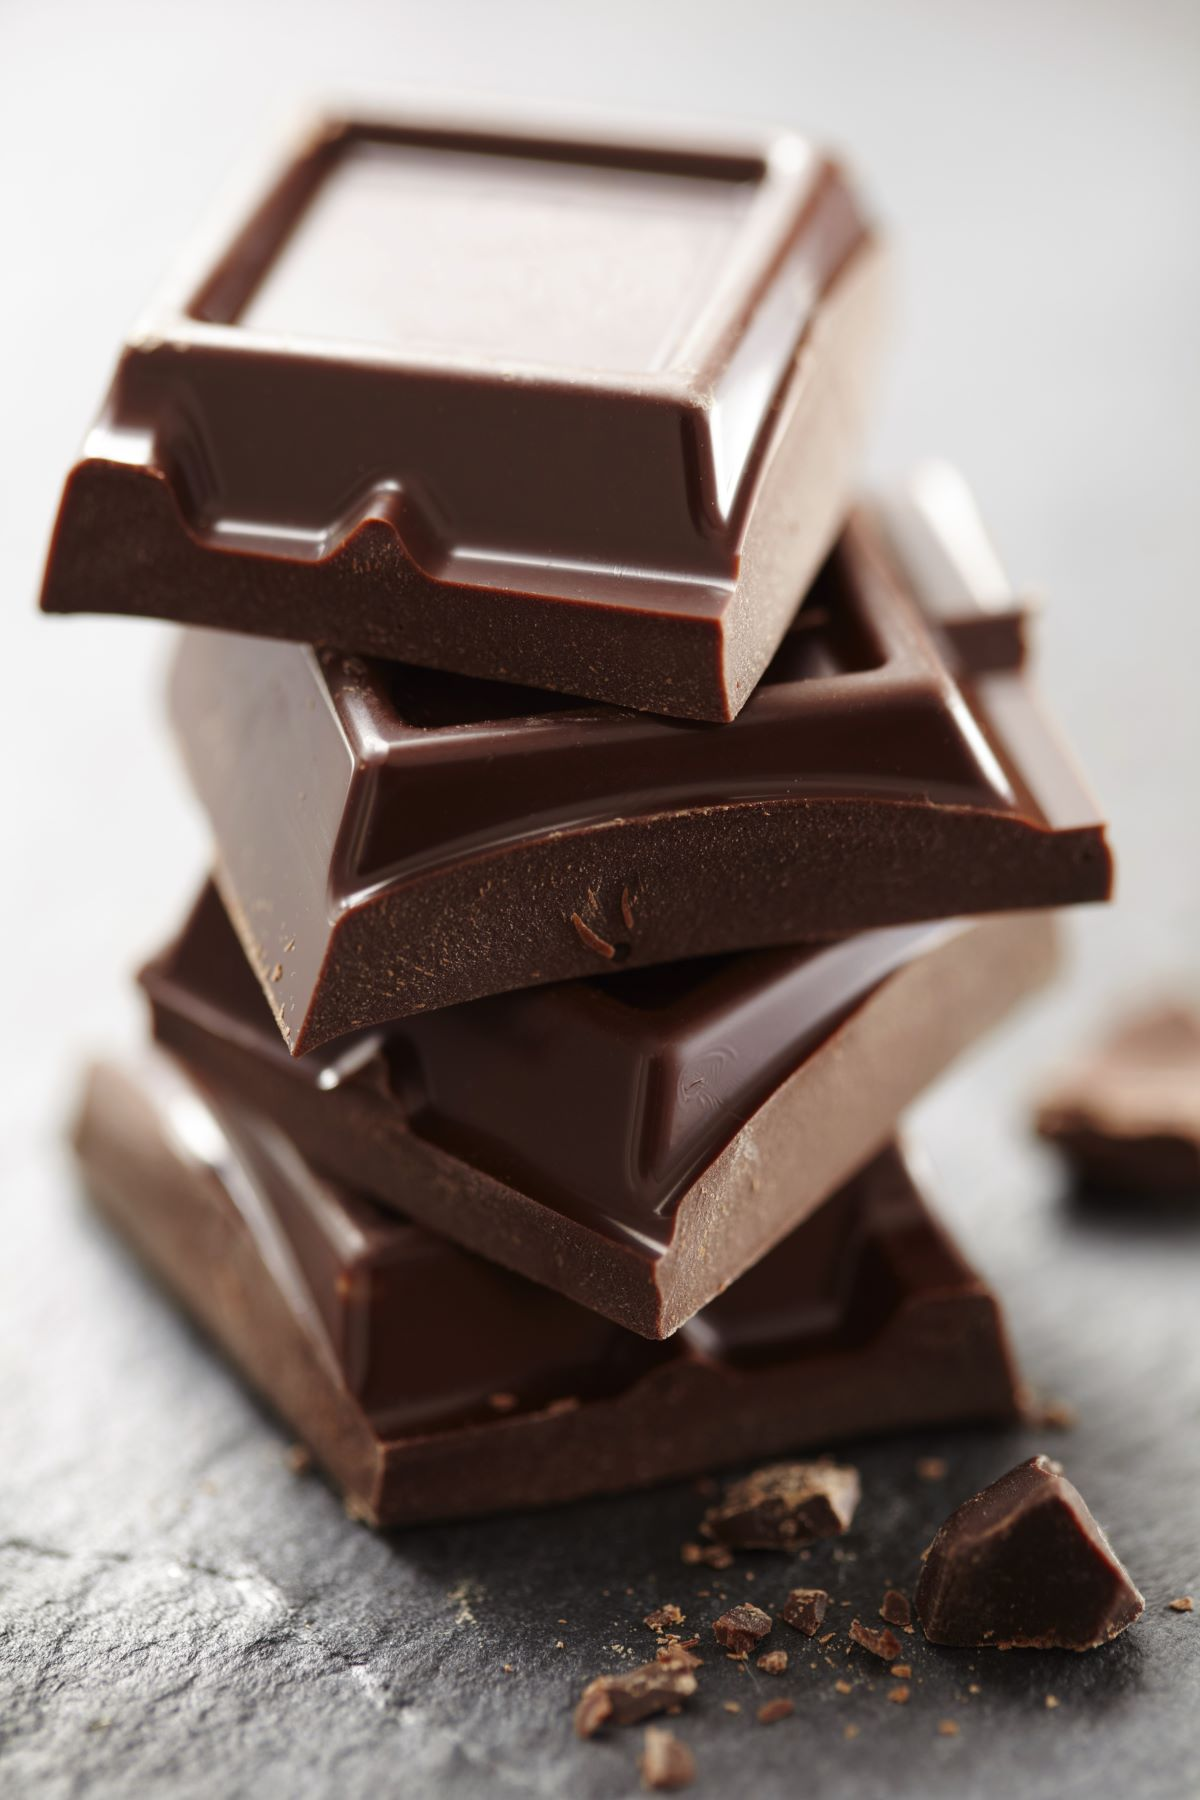 pieces of chocolate stacked on top of each other